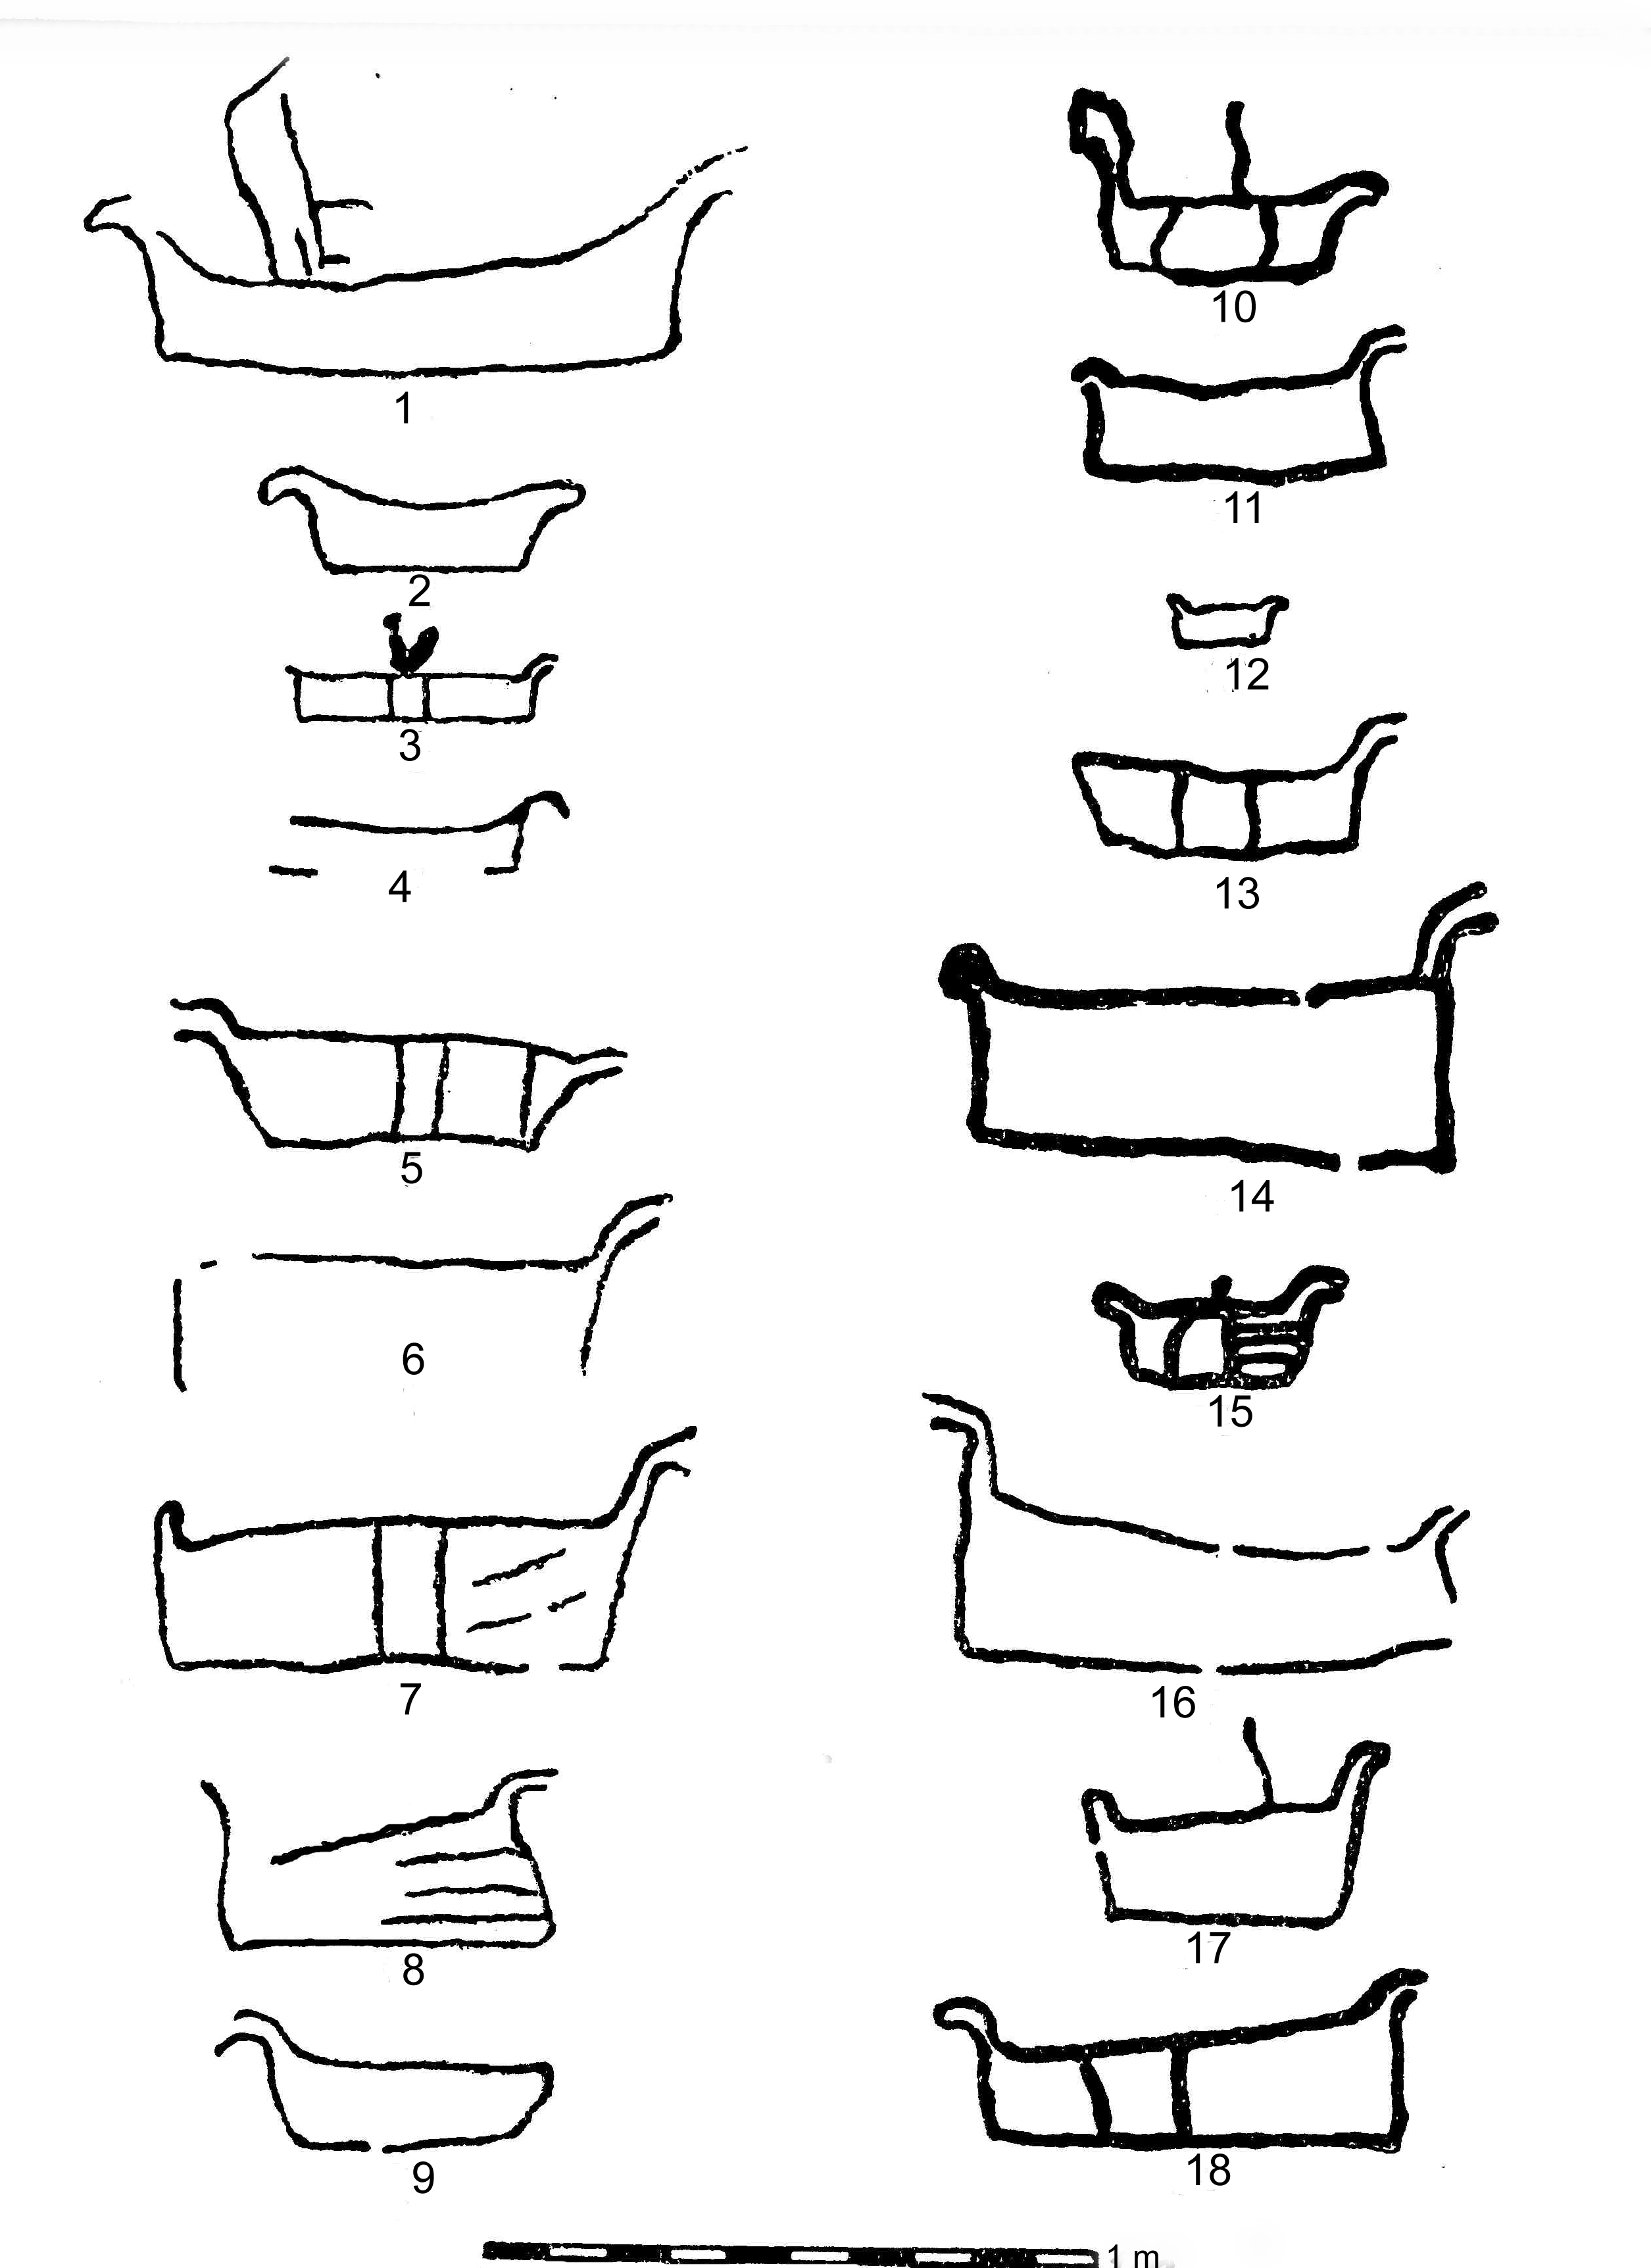 File:Hide Boats Stone Age Norway 1.png - Wikimedia Commons